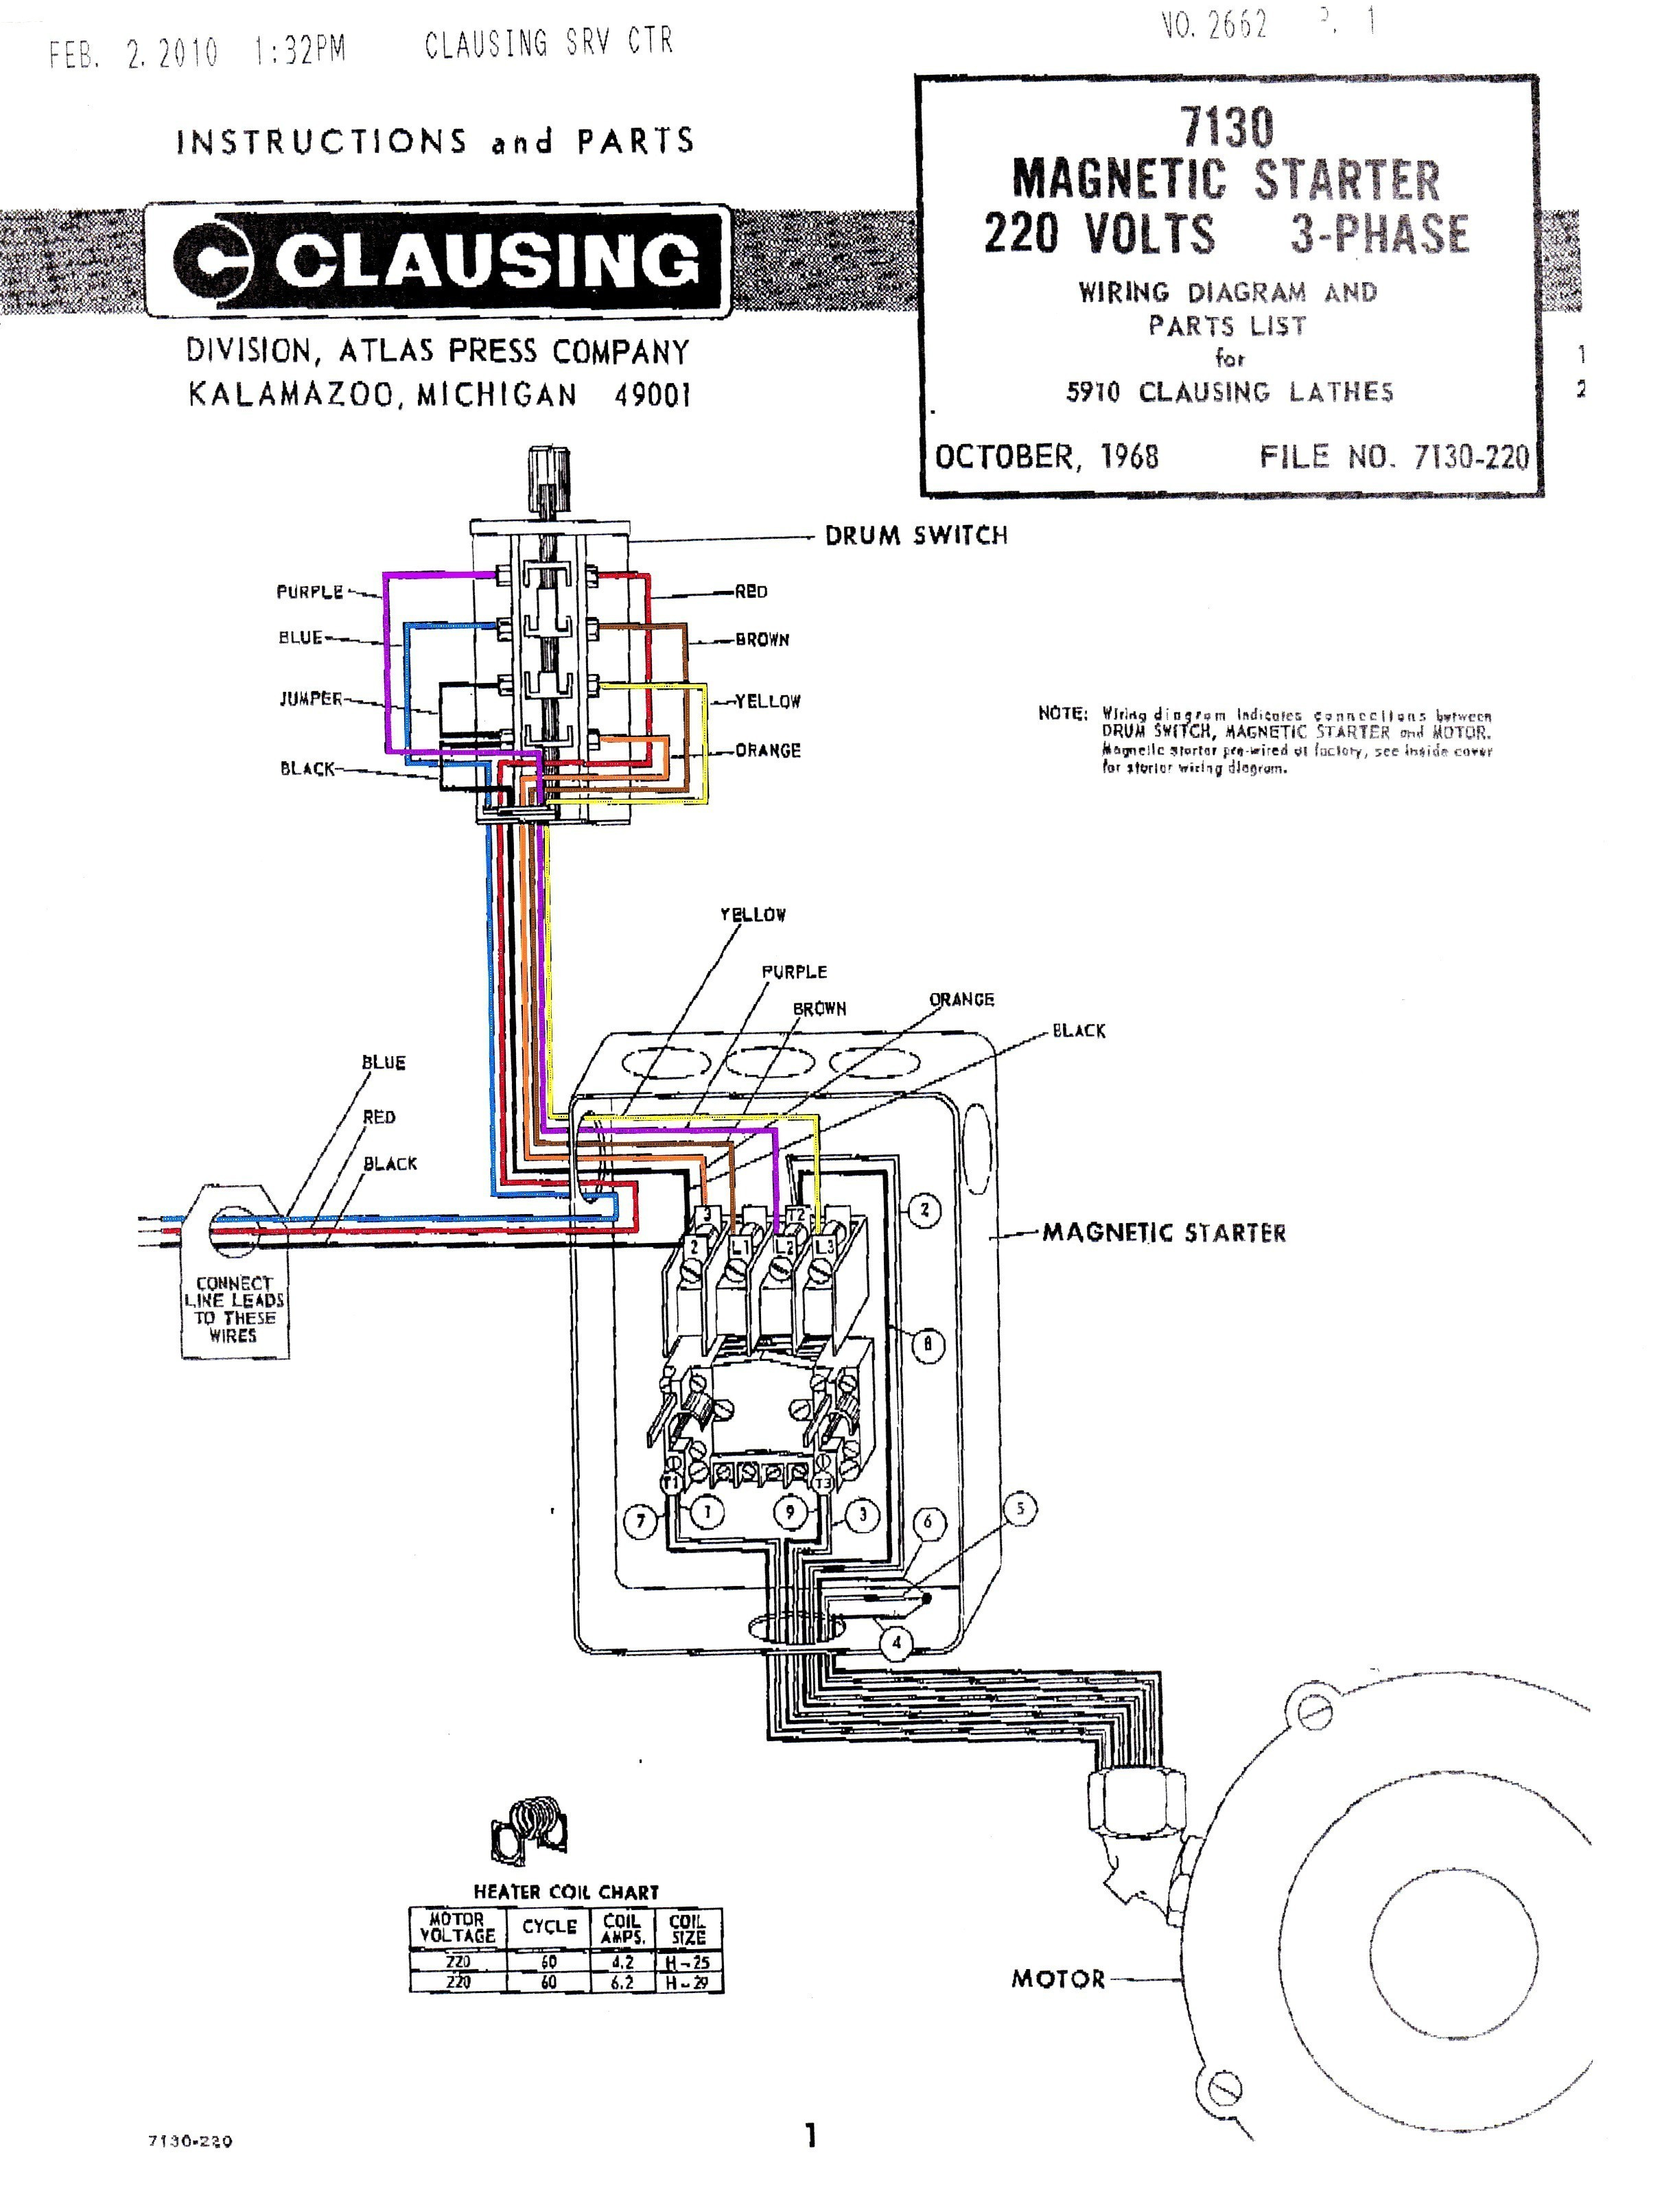 DIAGRAM] Viper Starter Wiring Diagram FULL Version HD Quality Wiring Diagram  - HVACDIAGRAMS.BELEN-RODRIGUEZ.ITbelen-rodriguez.it